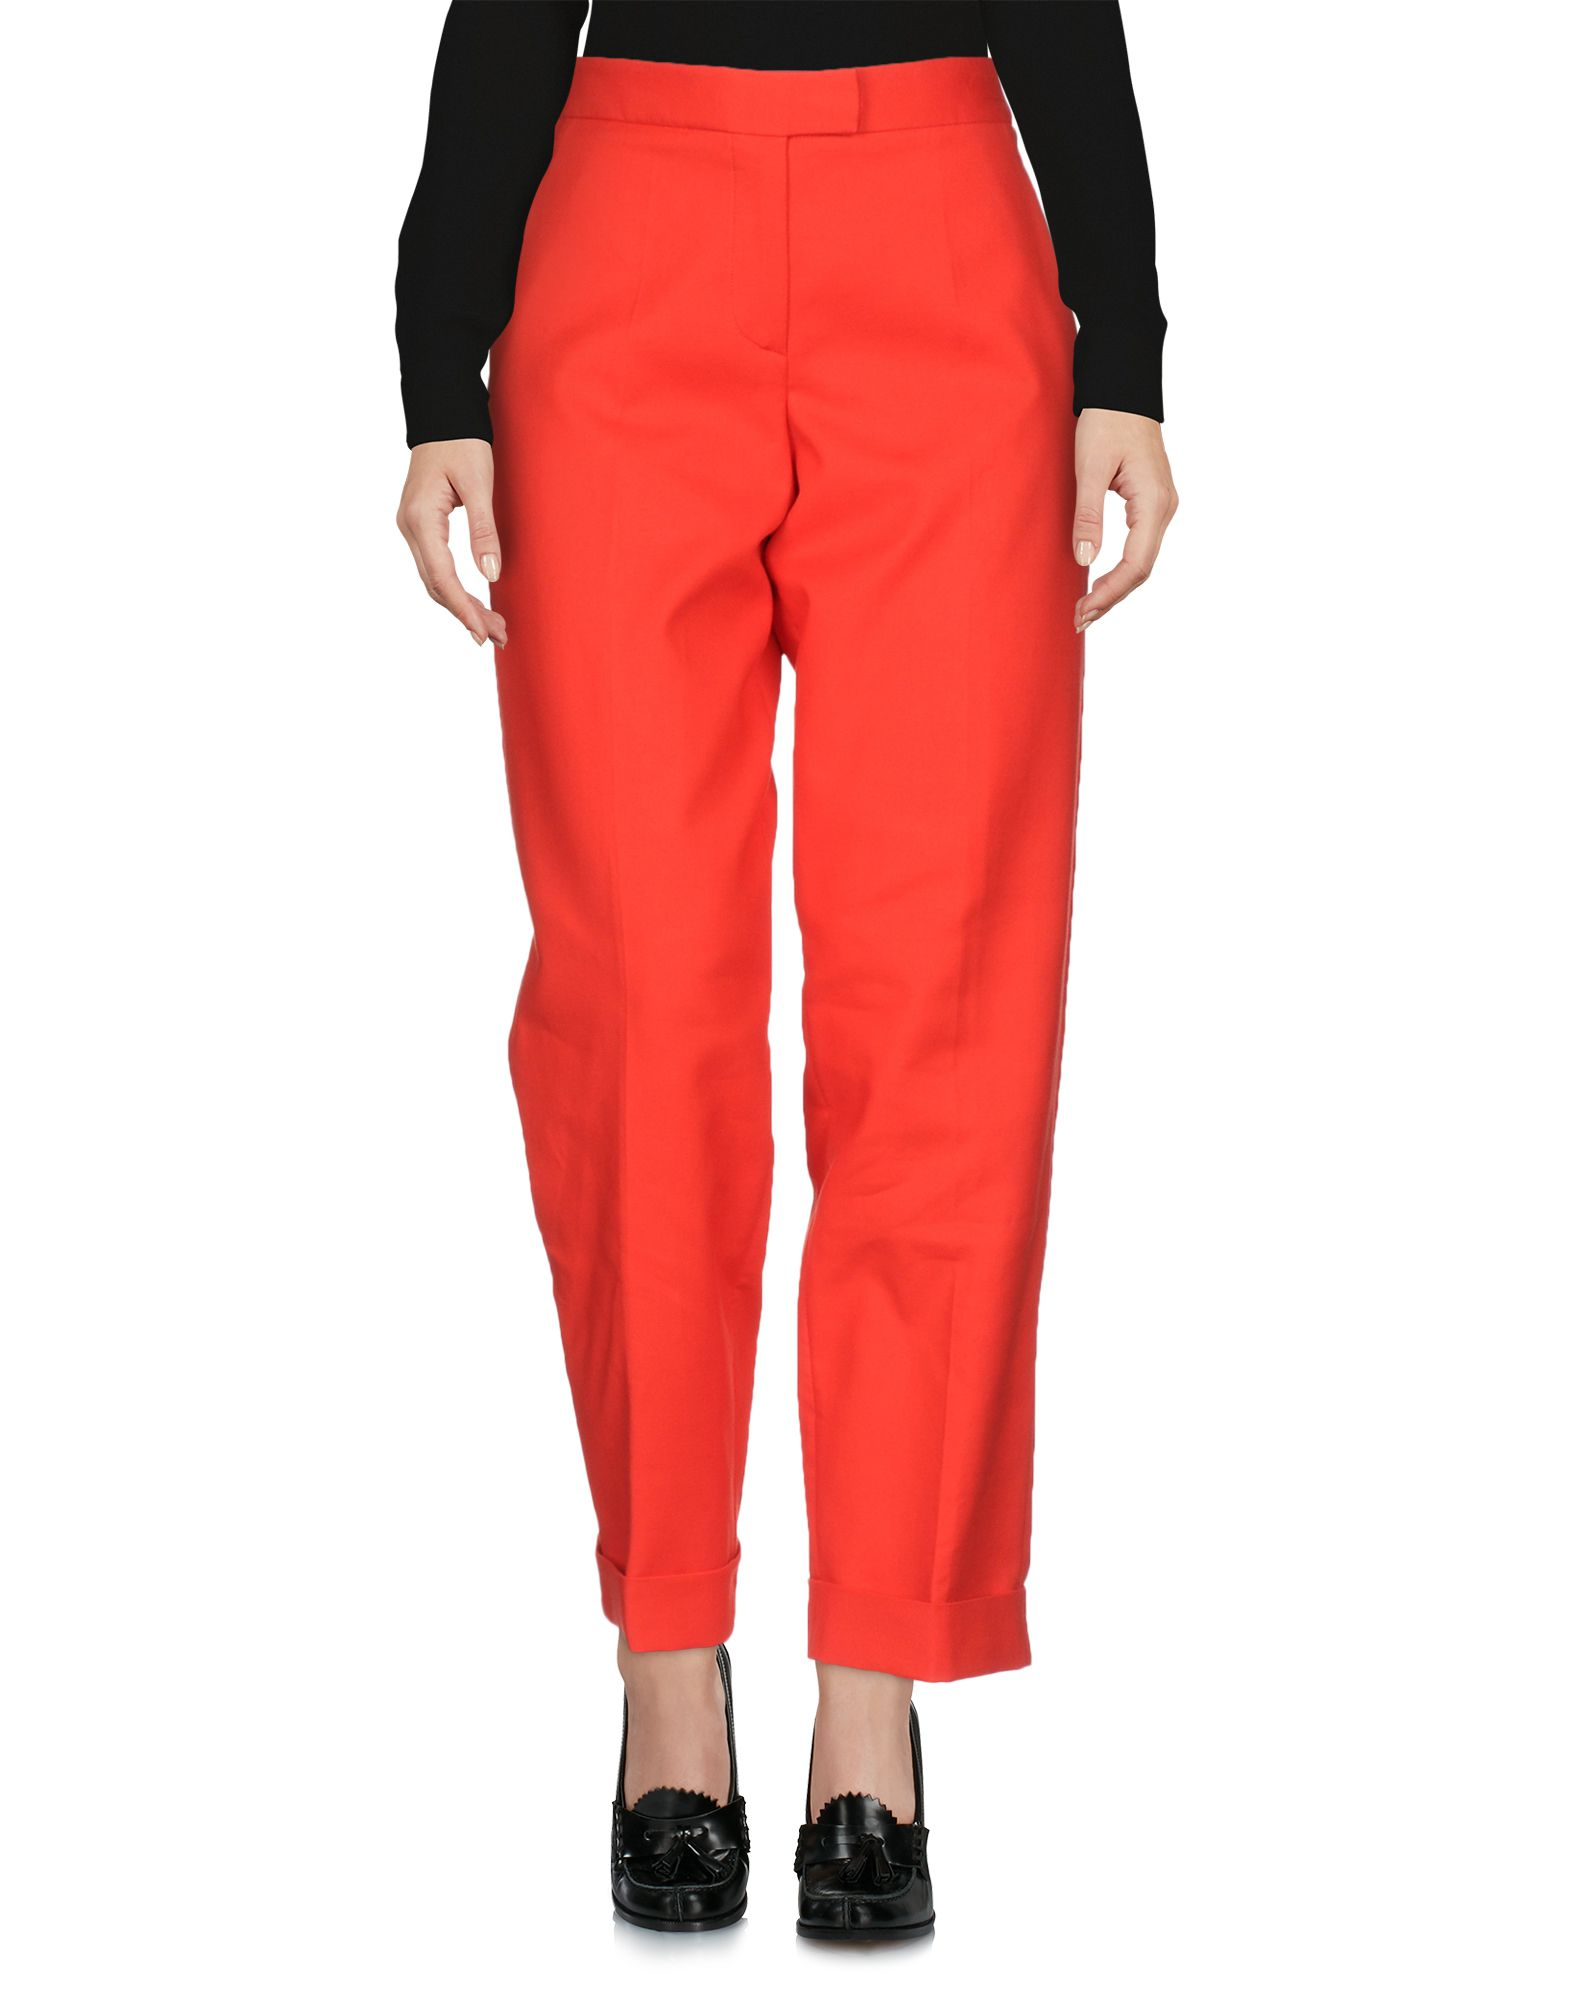 Pantalone Boutique Moschino Donna - Acquista online su d3dYe